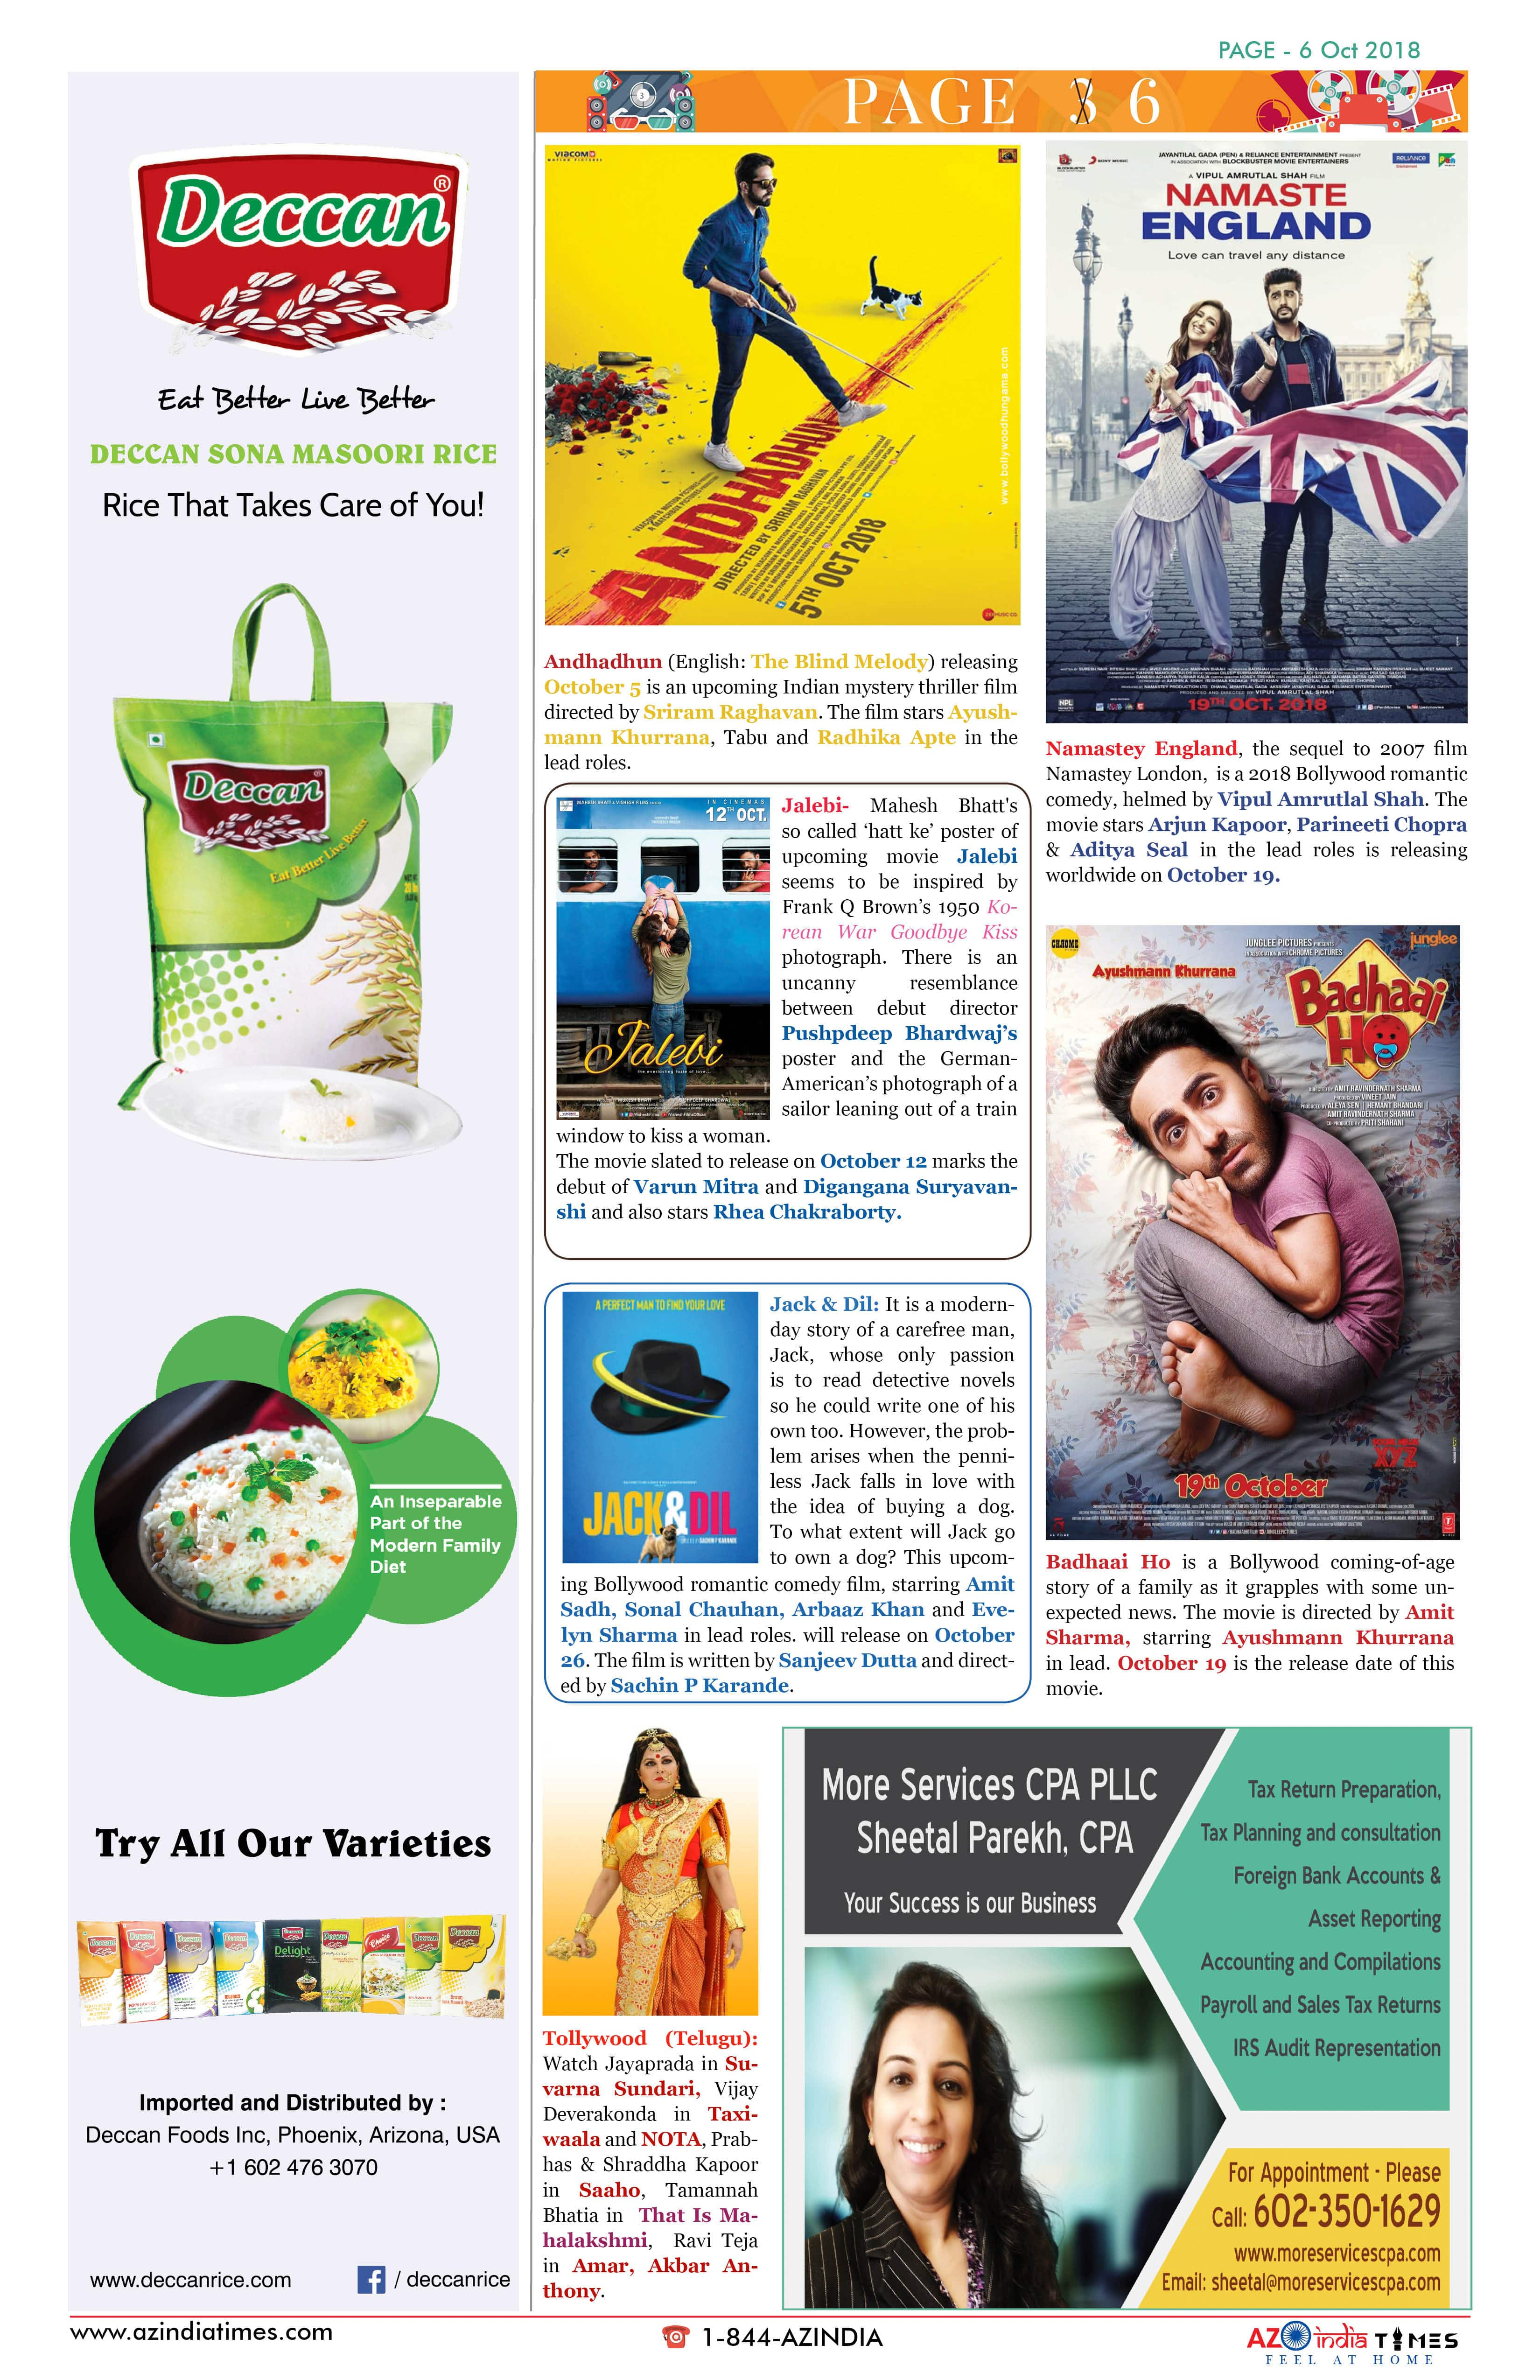 AZINDIA TIMES OCTOBER EDITION6